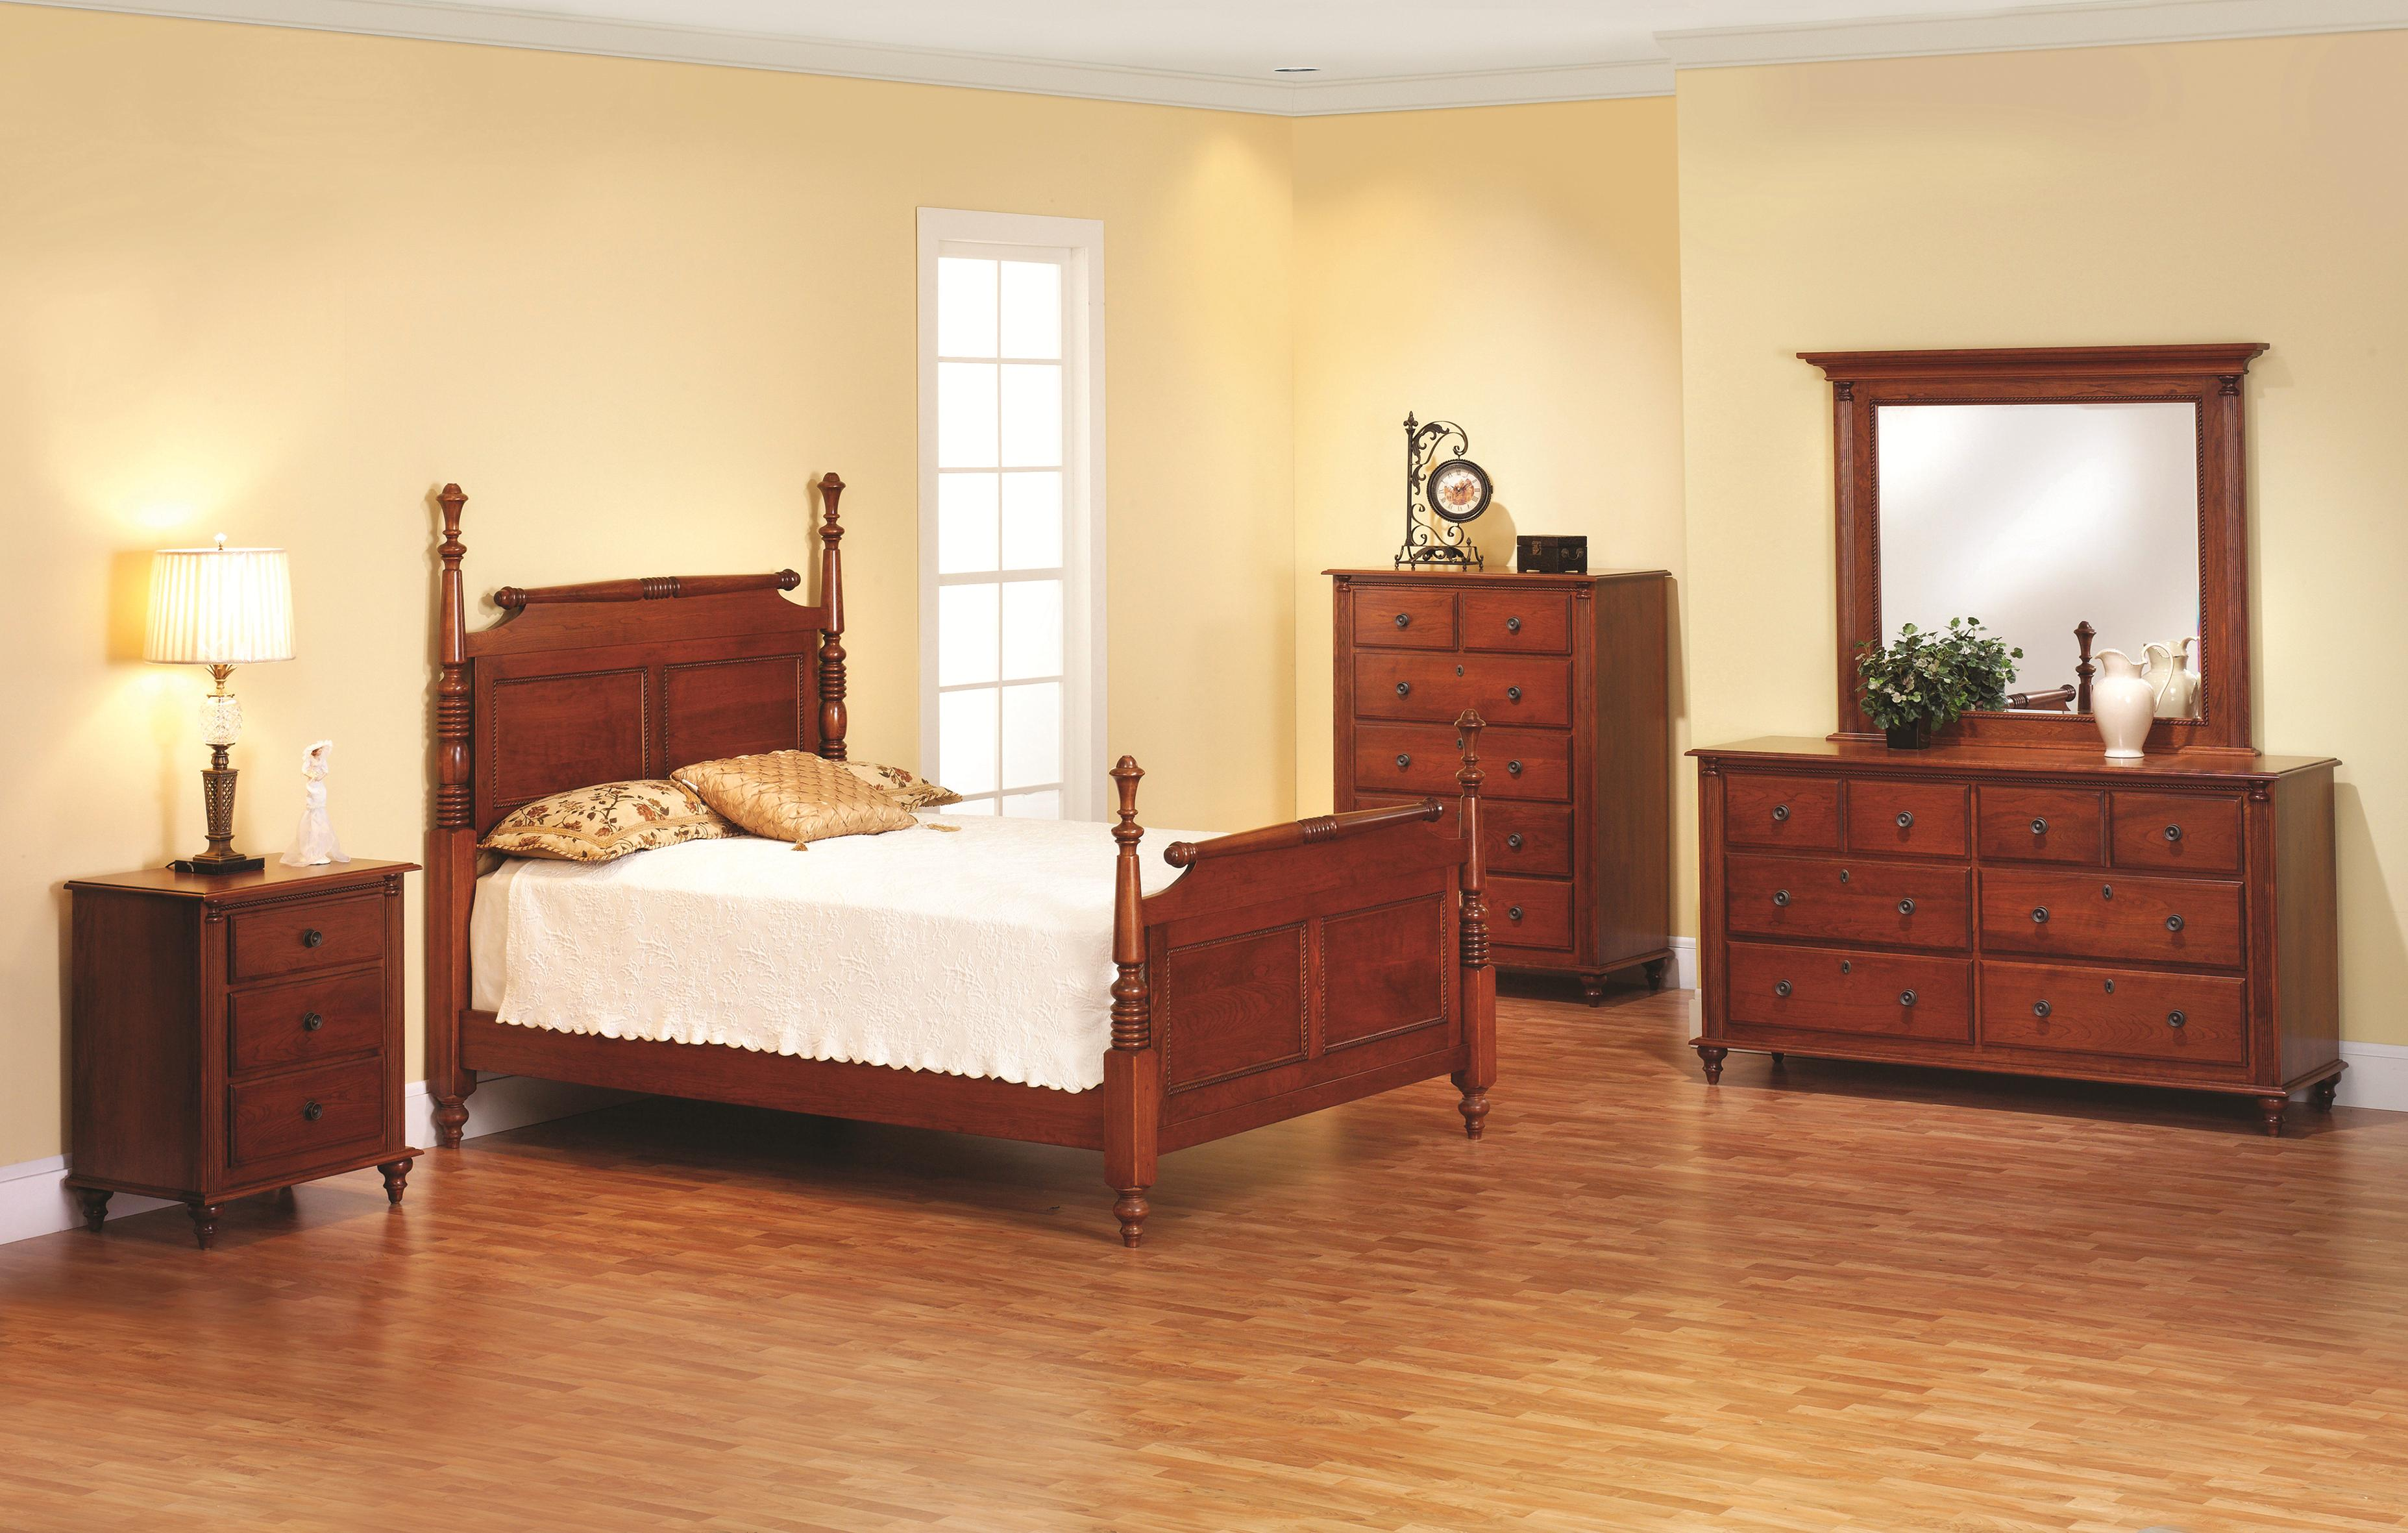 Fur Elise Queen Rolling Pin Bed Bedroom Group by Millcraft at Saugerties Furniture Mart